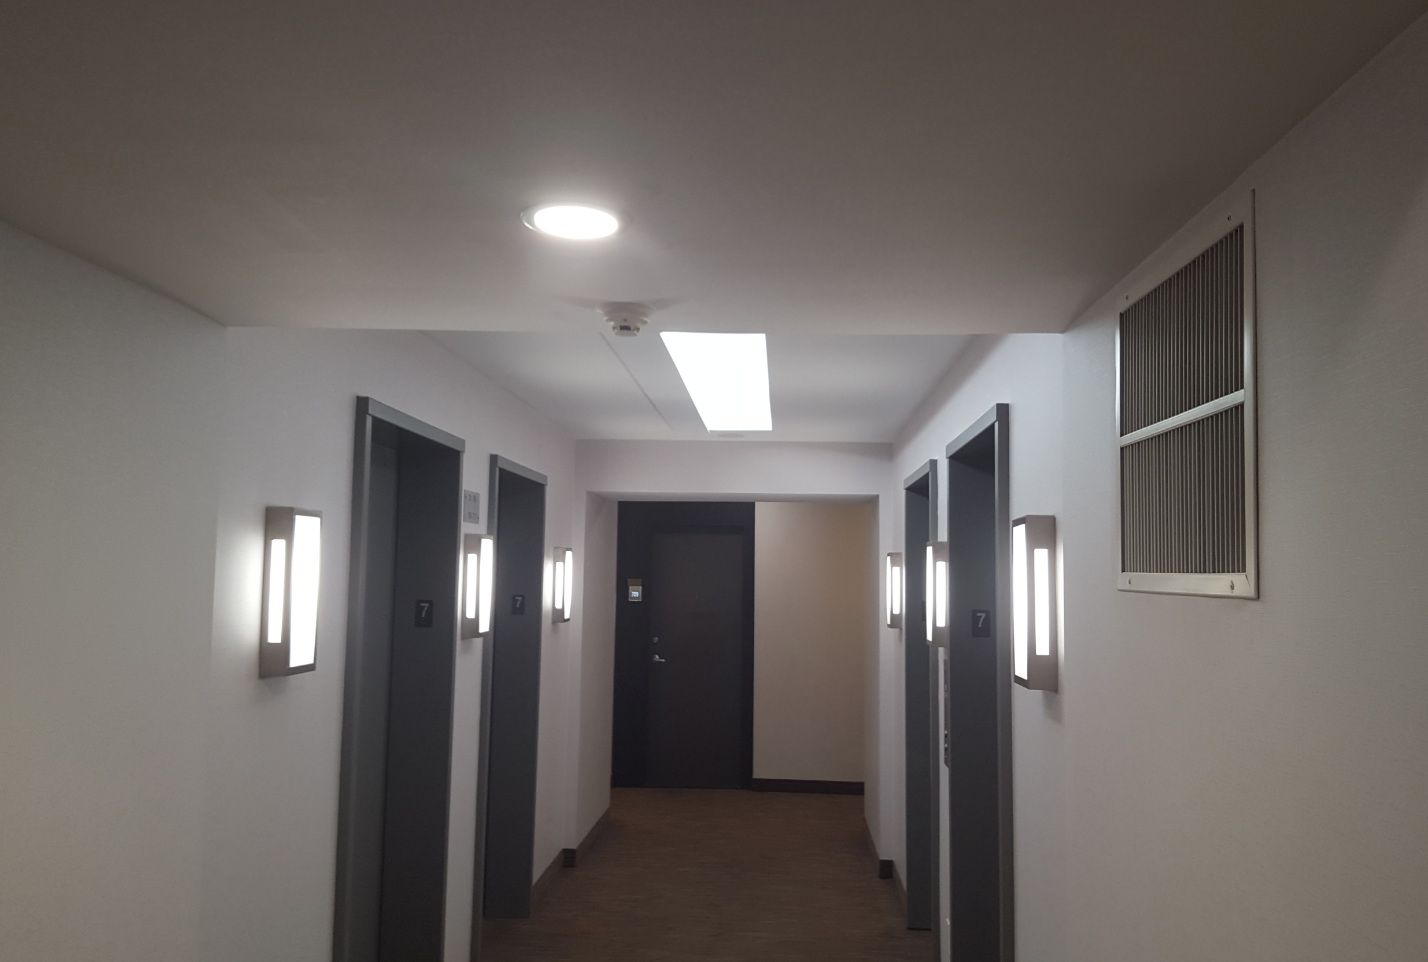 LED Commercial & Street Lighting | Energy Efficient Lighting